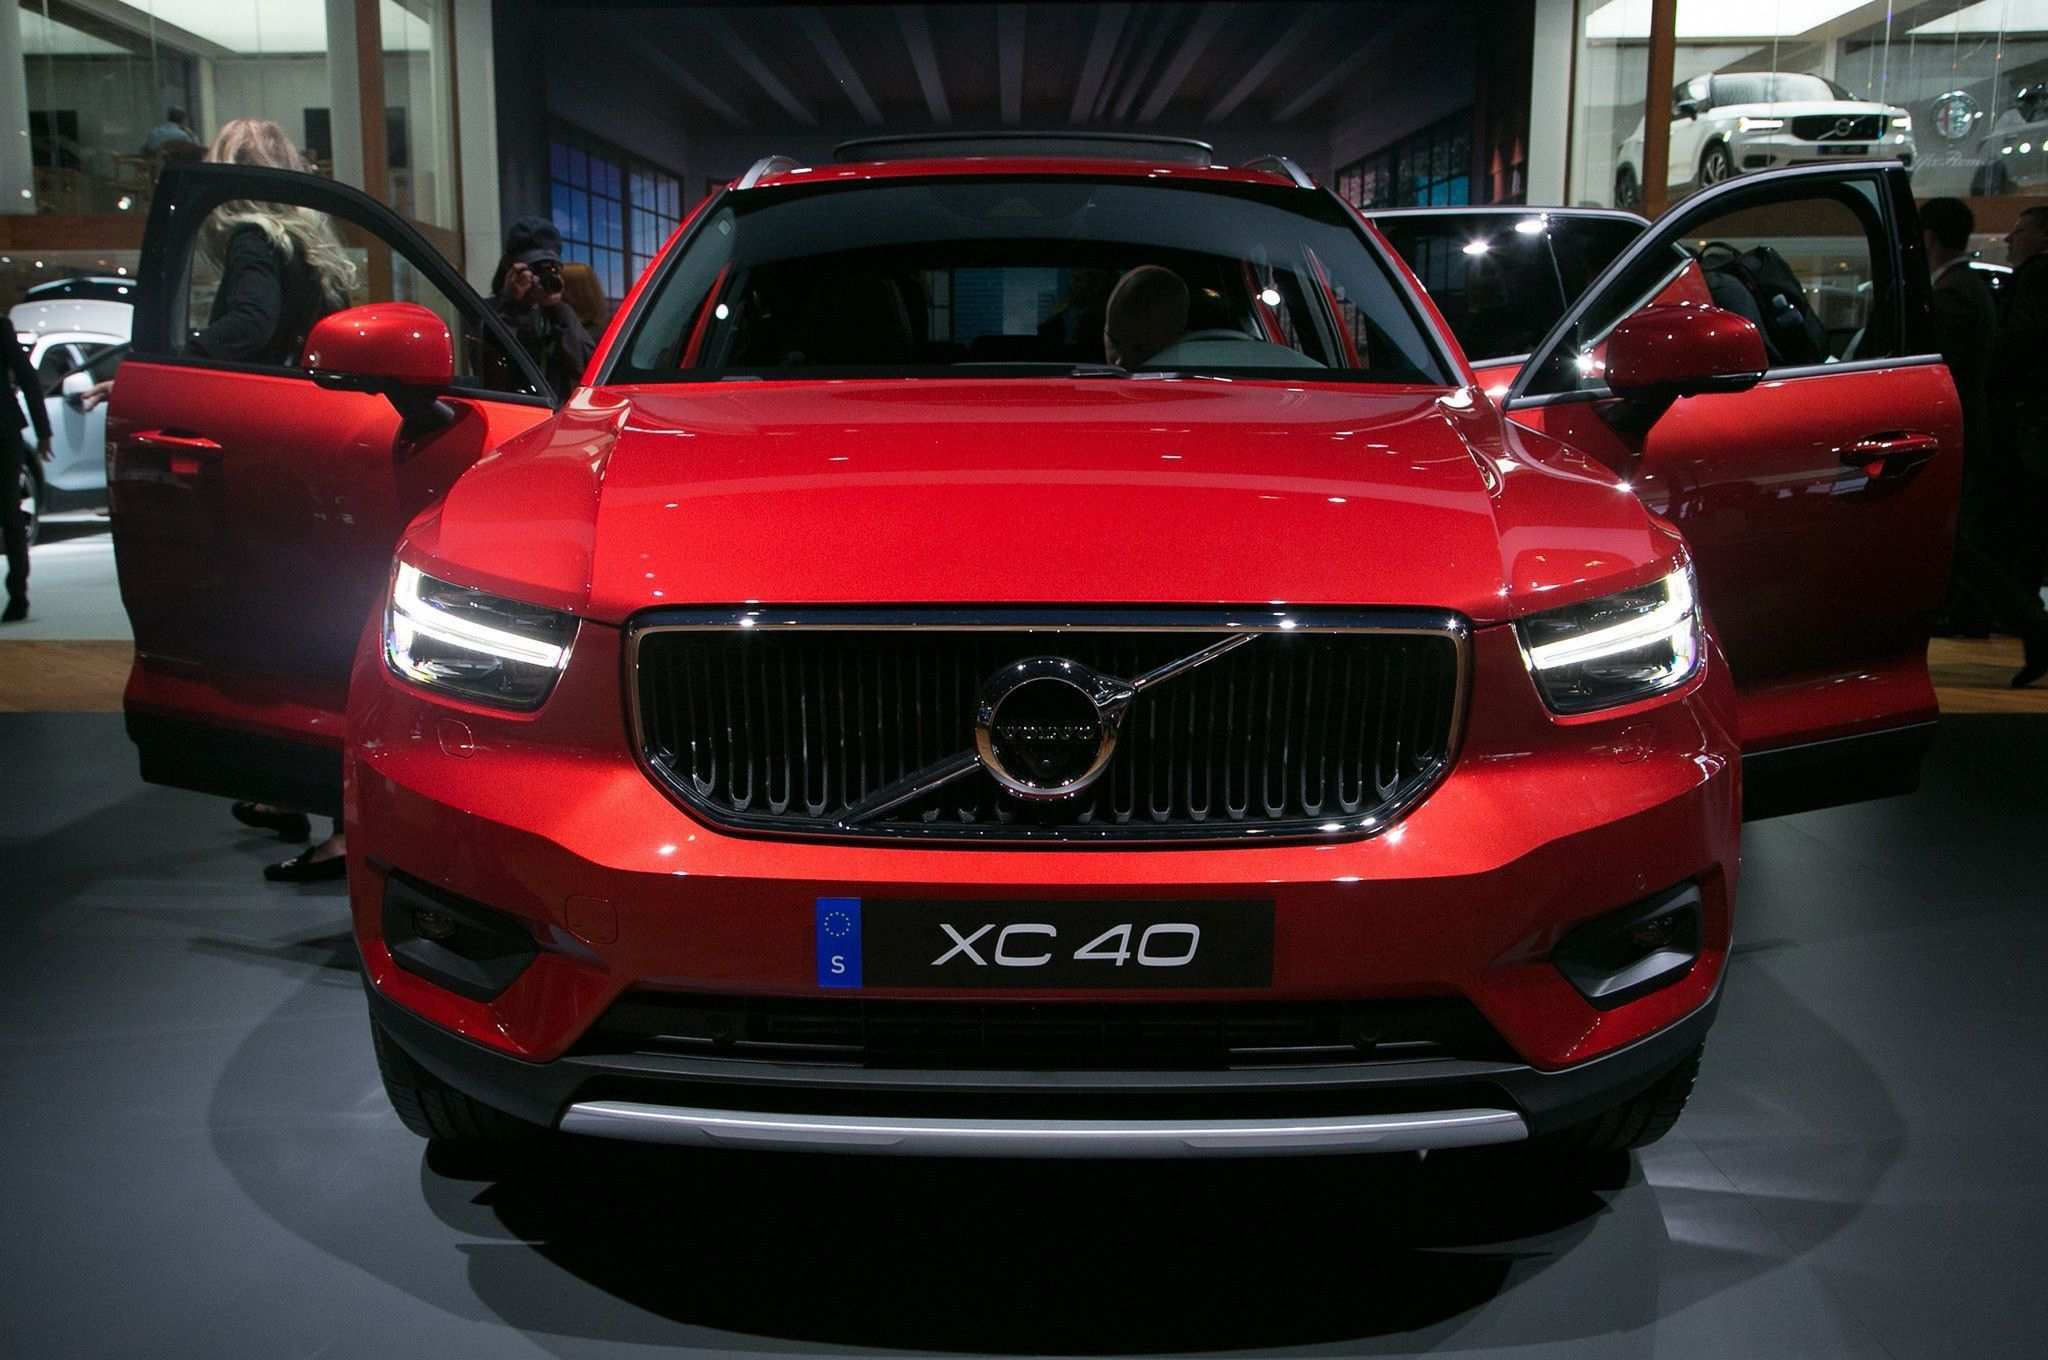 79 Concept of Volvo Xc40 Dimensions 2020 Speed Test for Volvo Xc40 Dimensions 2020